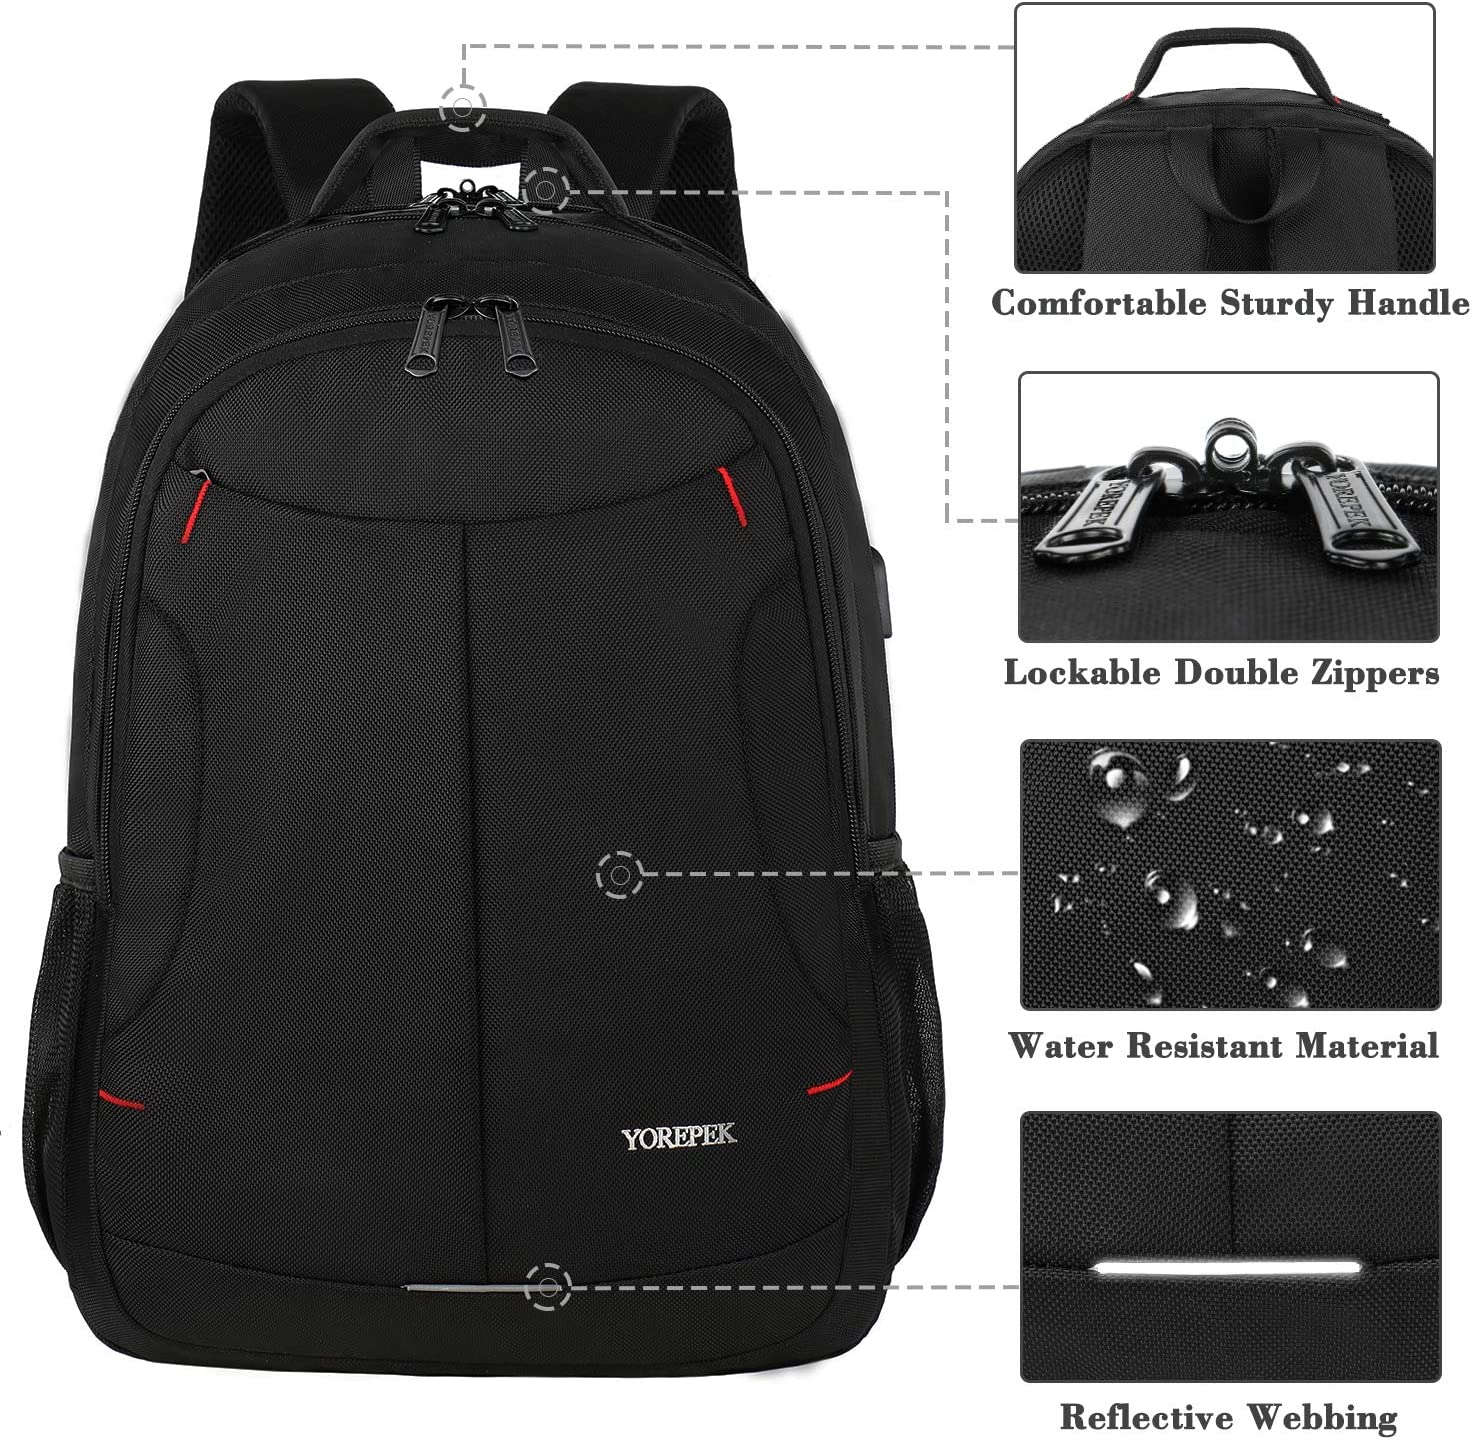 Laptop Backpack,Extra Large Travel Laptop Computer Backpack for Men Women,TSA Durable USB Backpack with Luggage Sleeve,Water Resistant Big Business College School Bookbag Fits 17 Inch Laptops